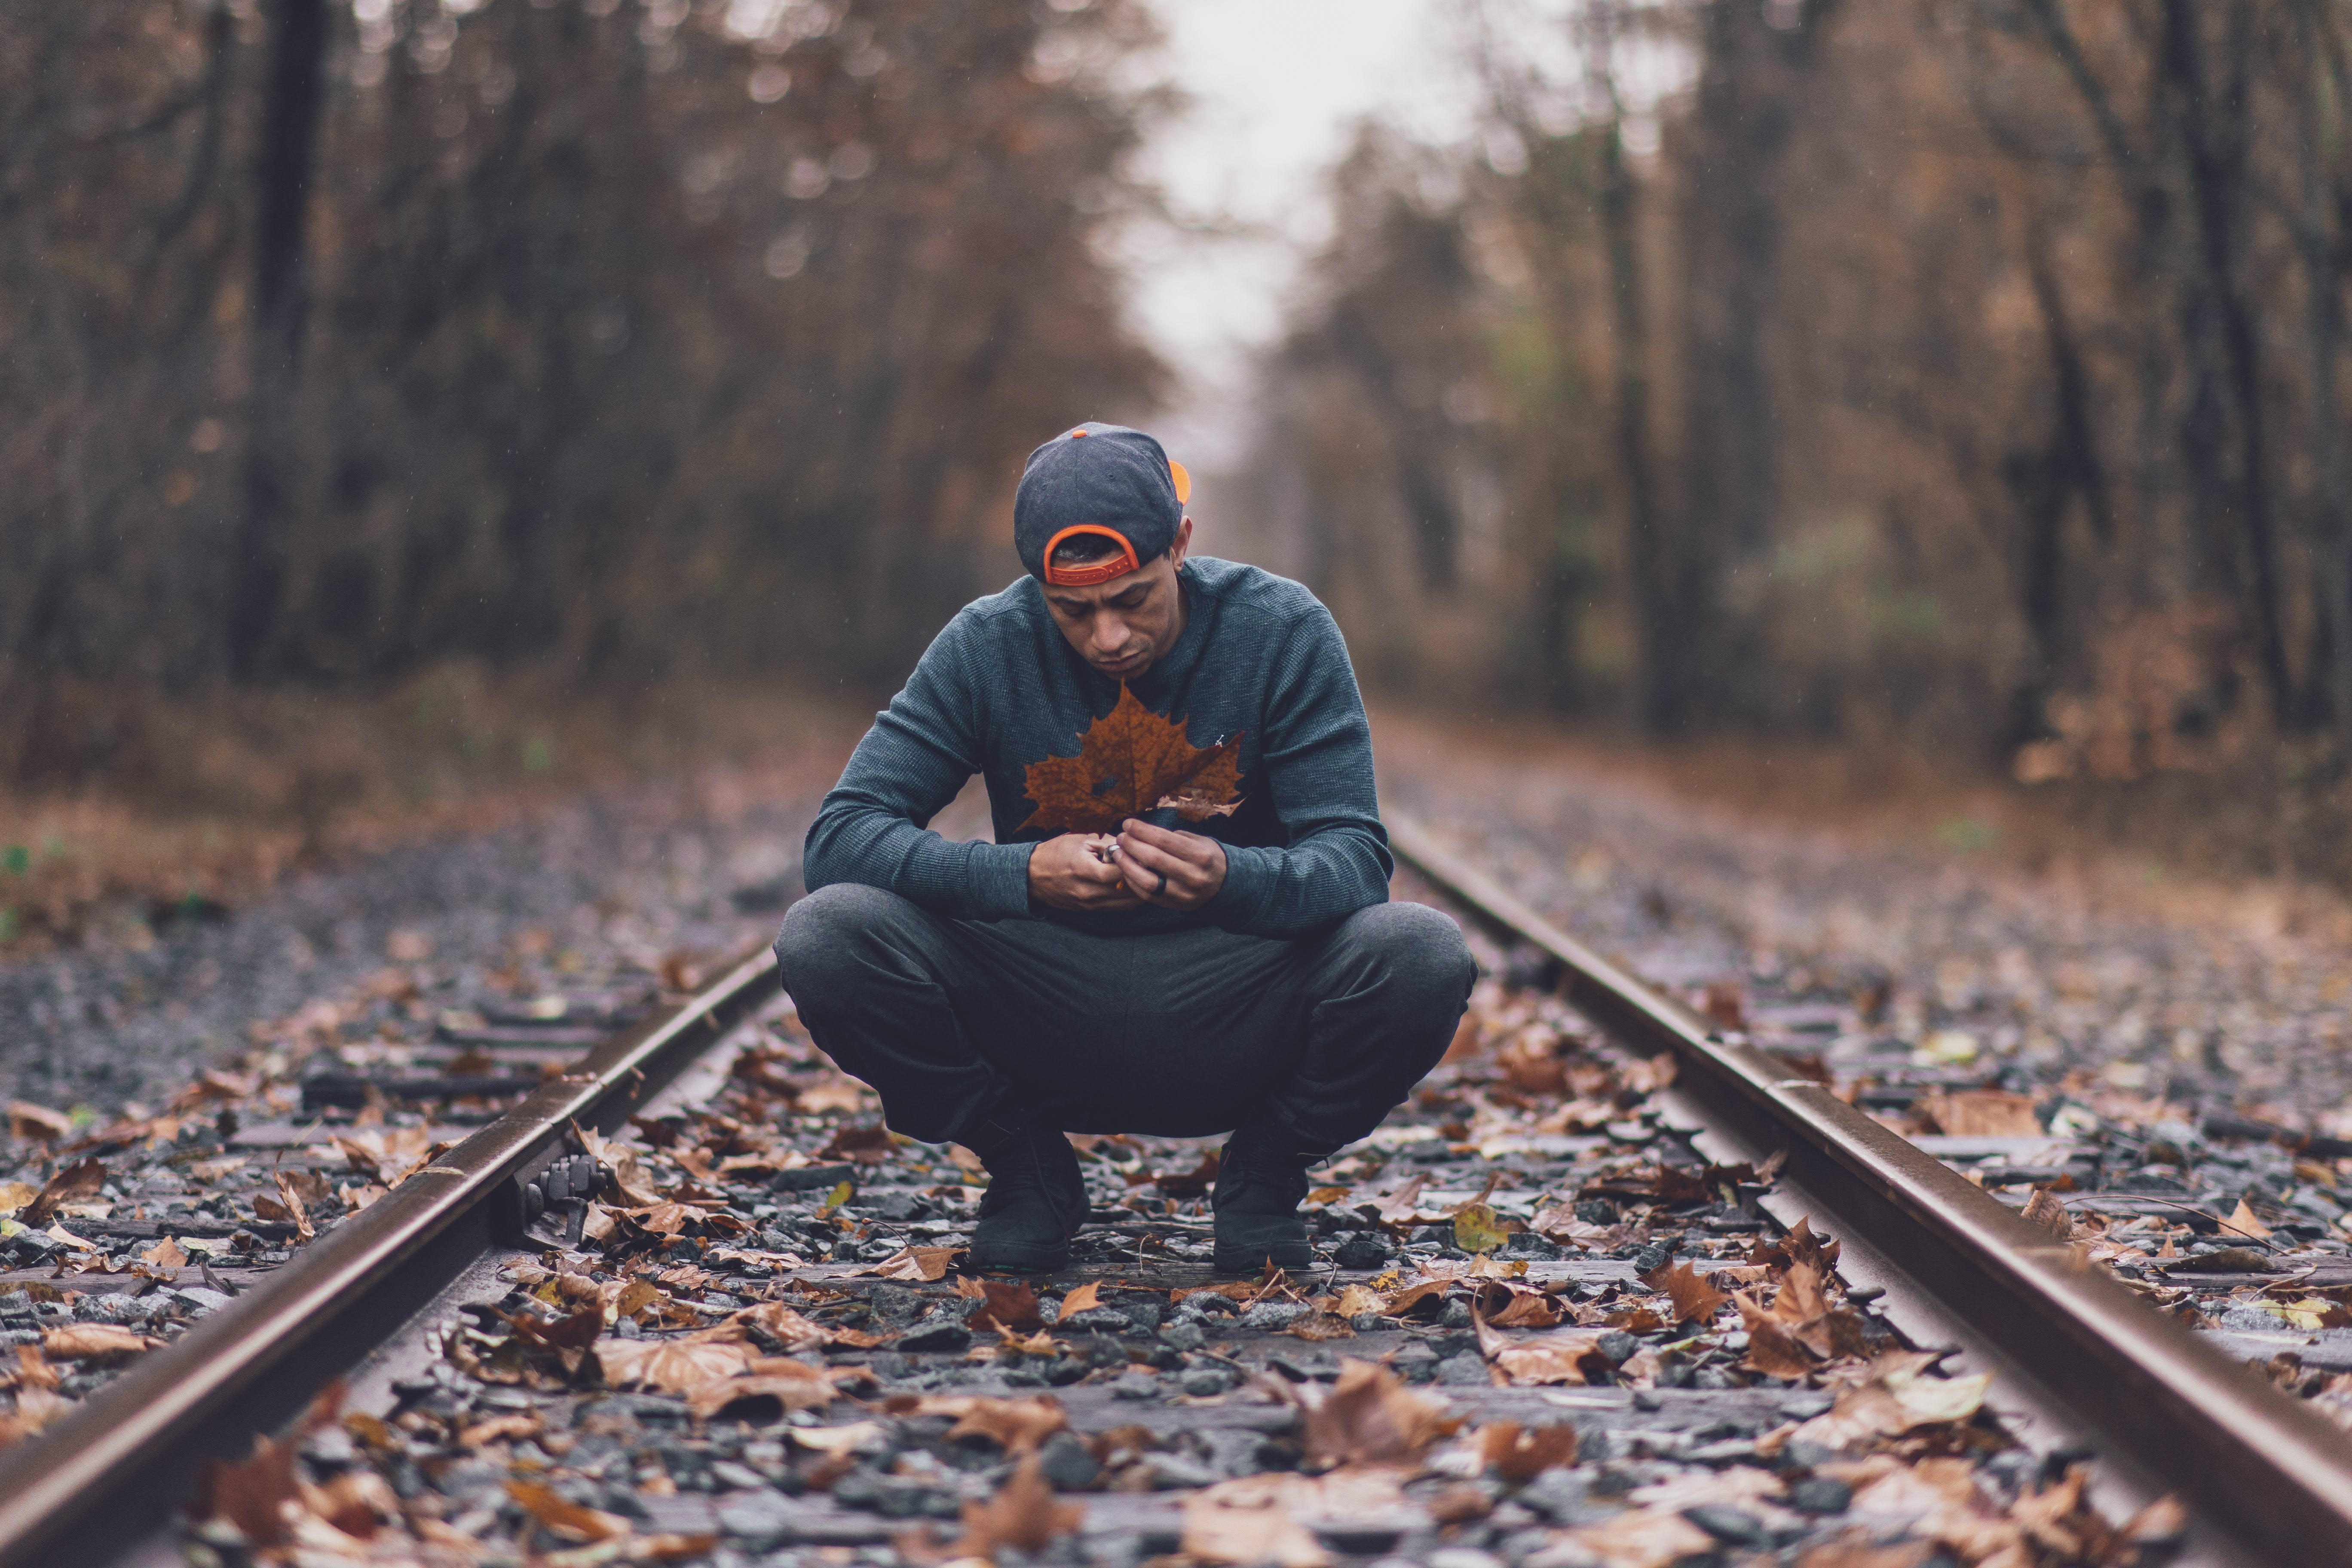 Man Squatting on Railroad